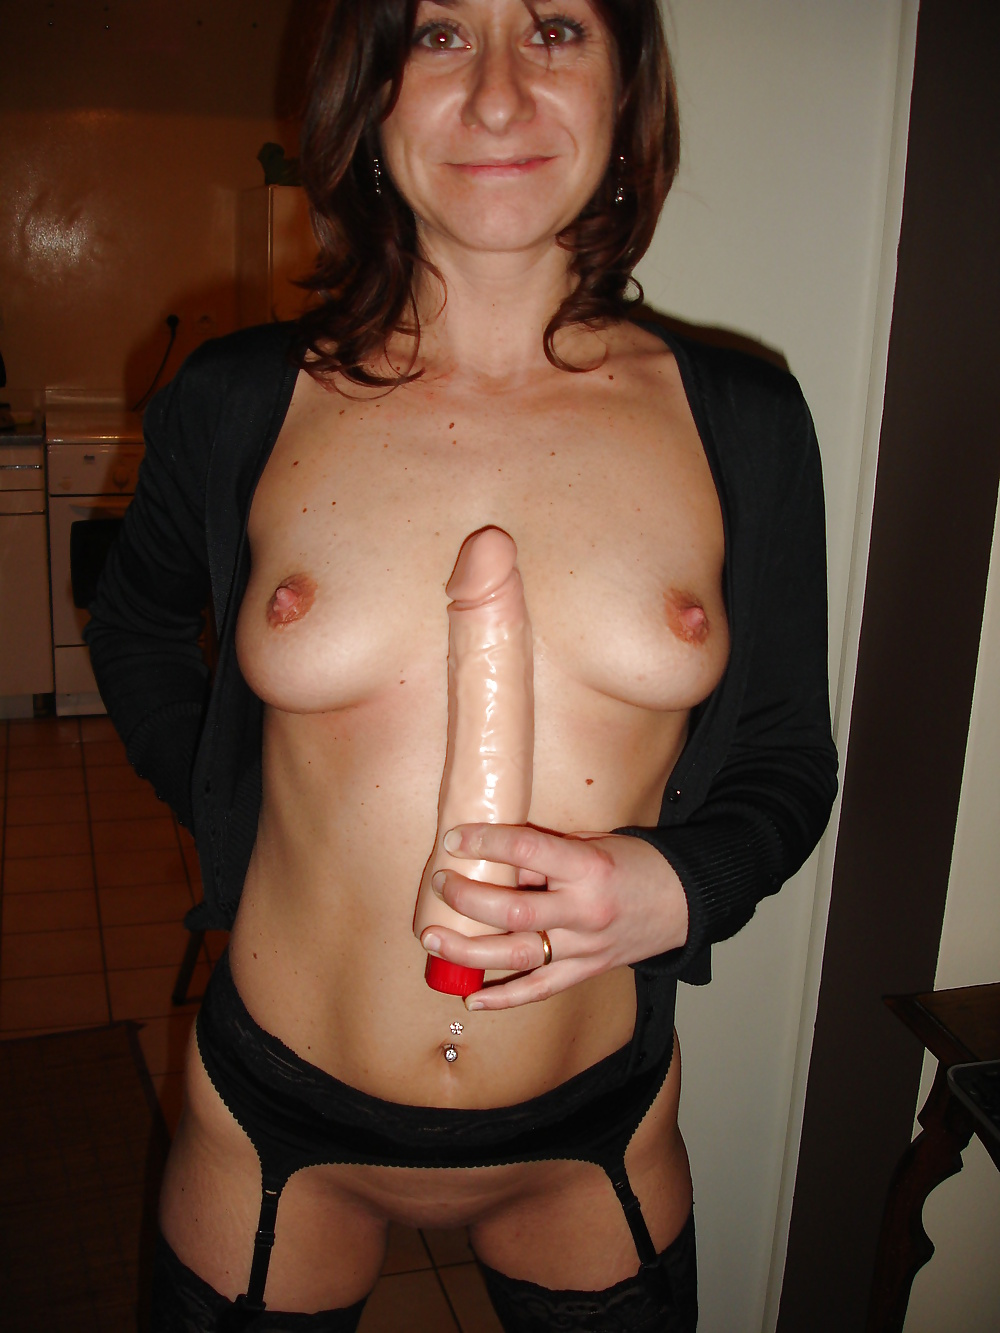 http://hotamateurmature.com/gallery/Mature_housewives_and_sexy_grannies_16/19.jpg